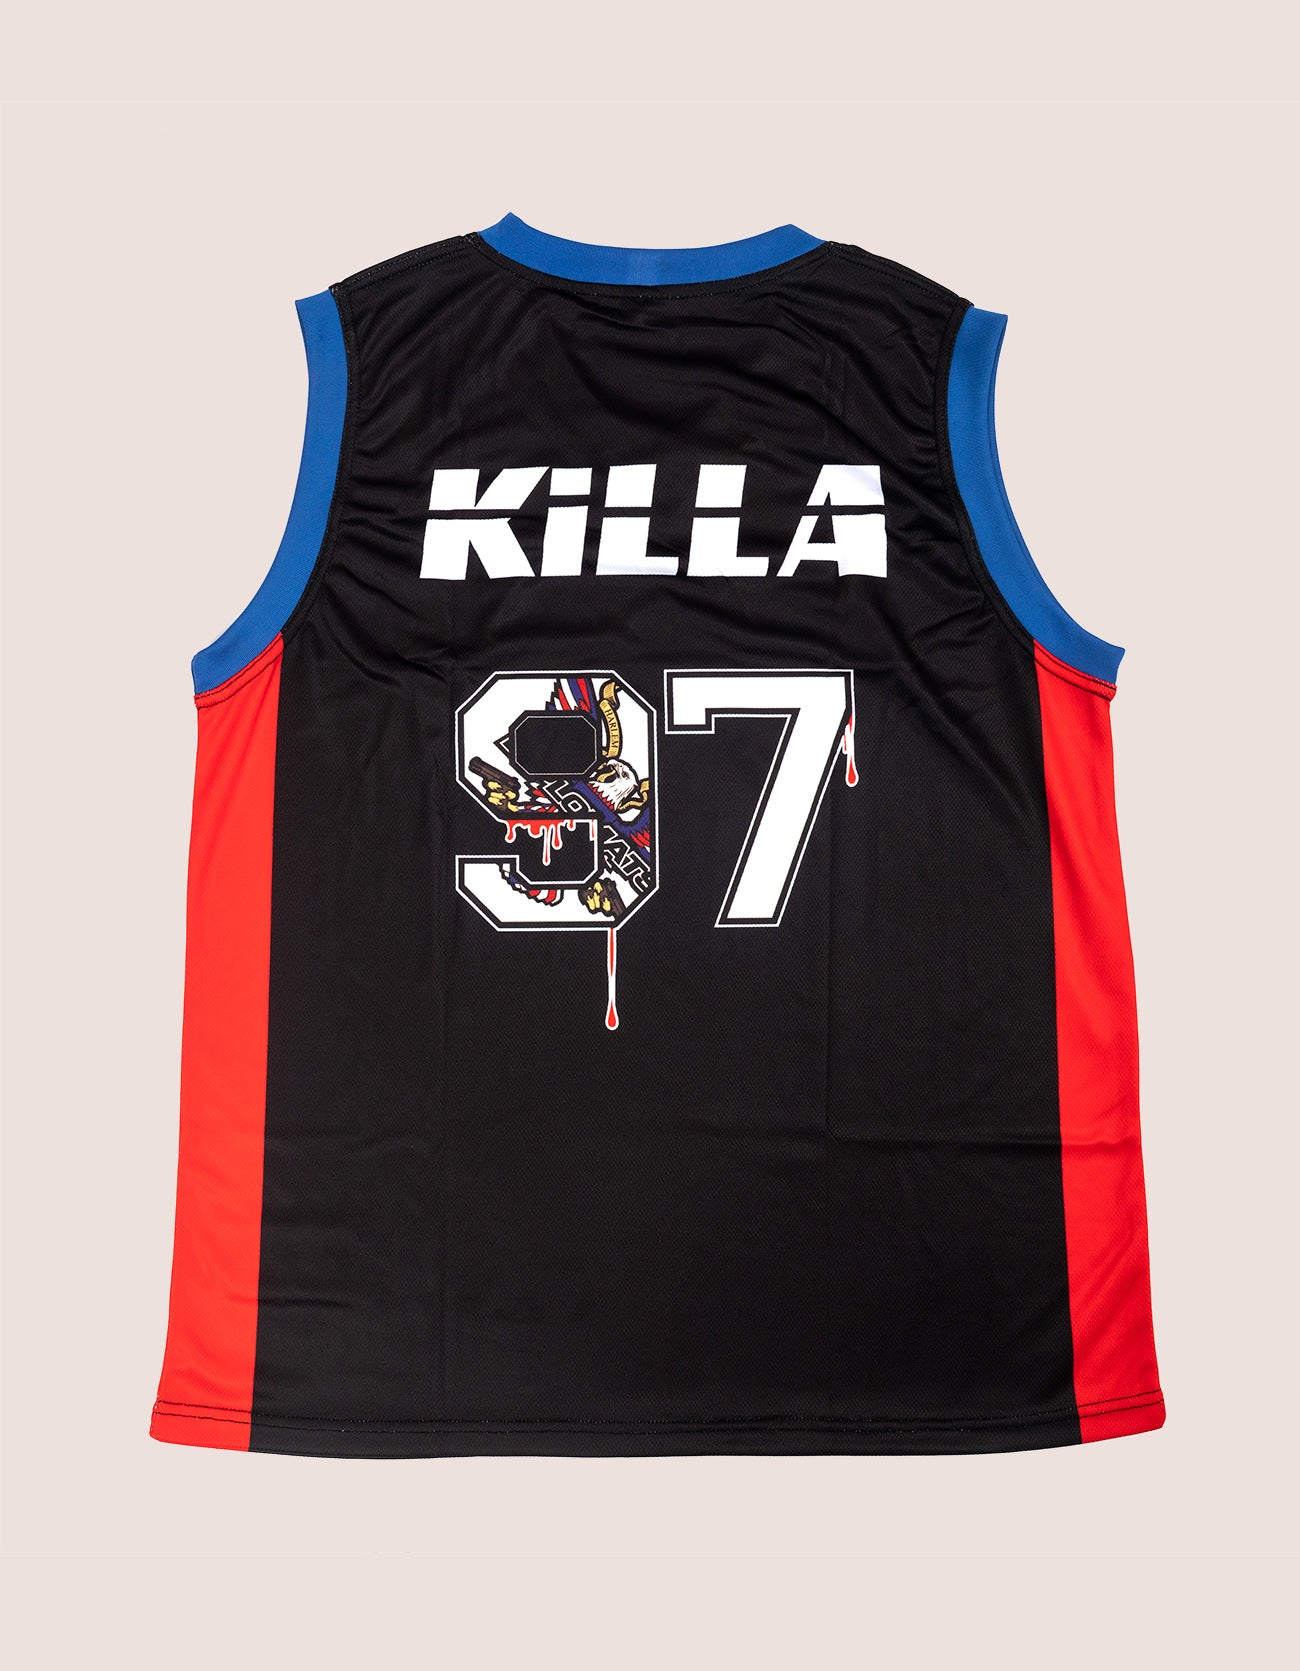 Killa 97 Blk/Red basket Ball Jersey